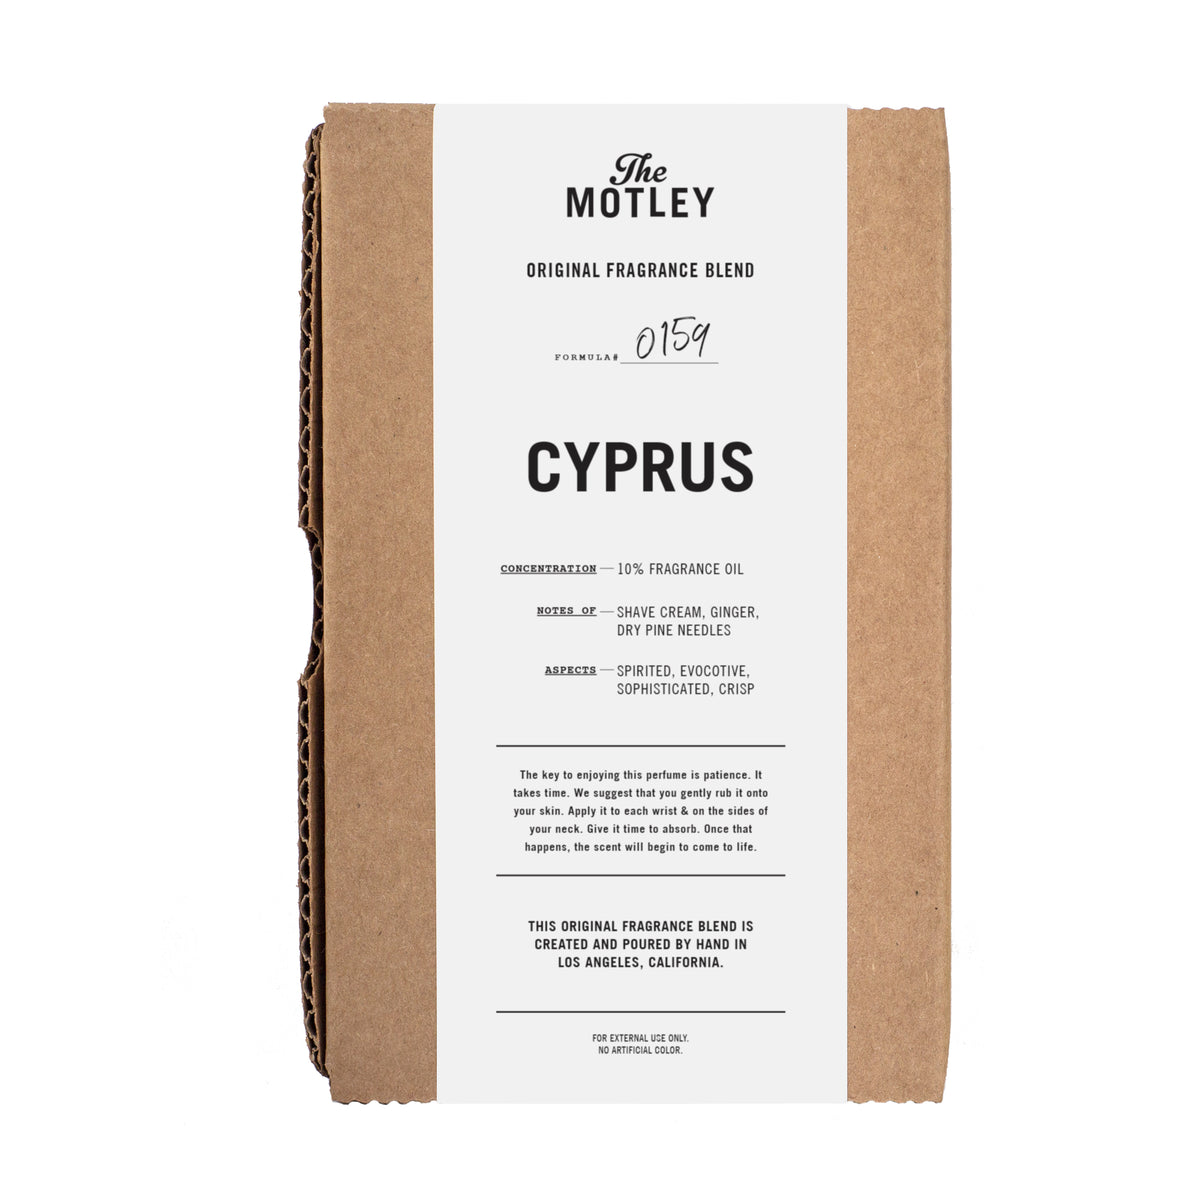 The Motley Cyprus Cologne